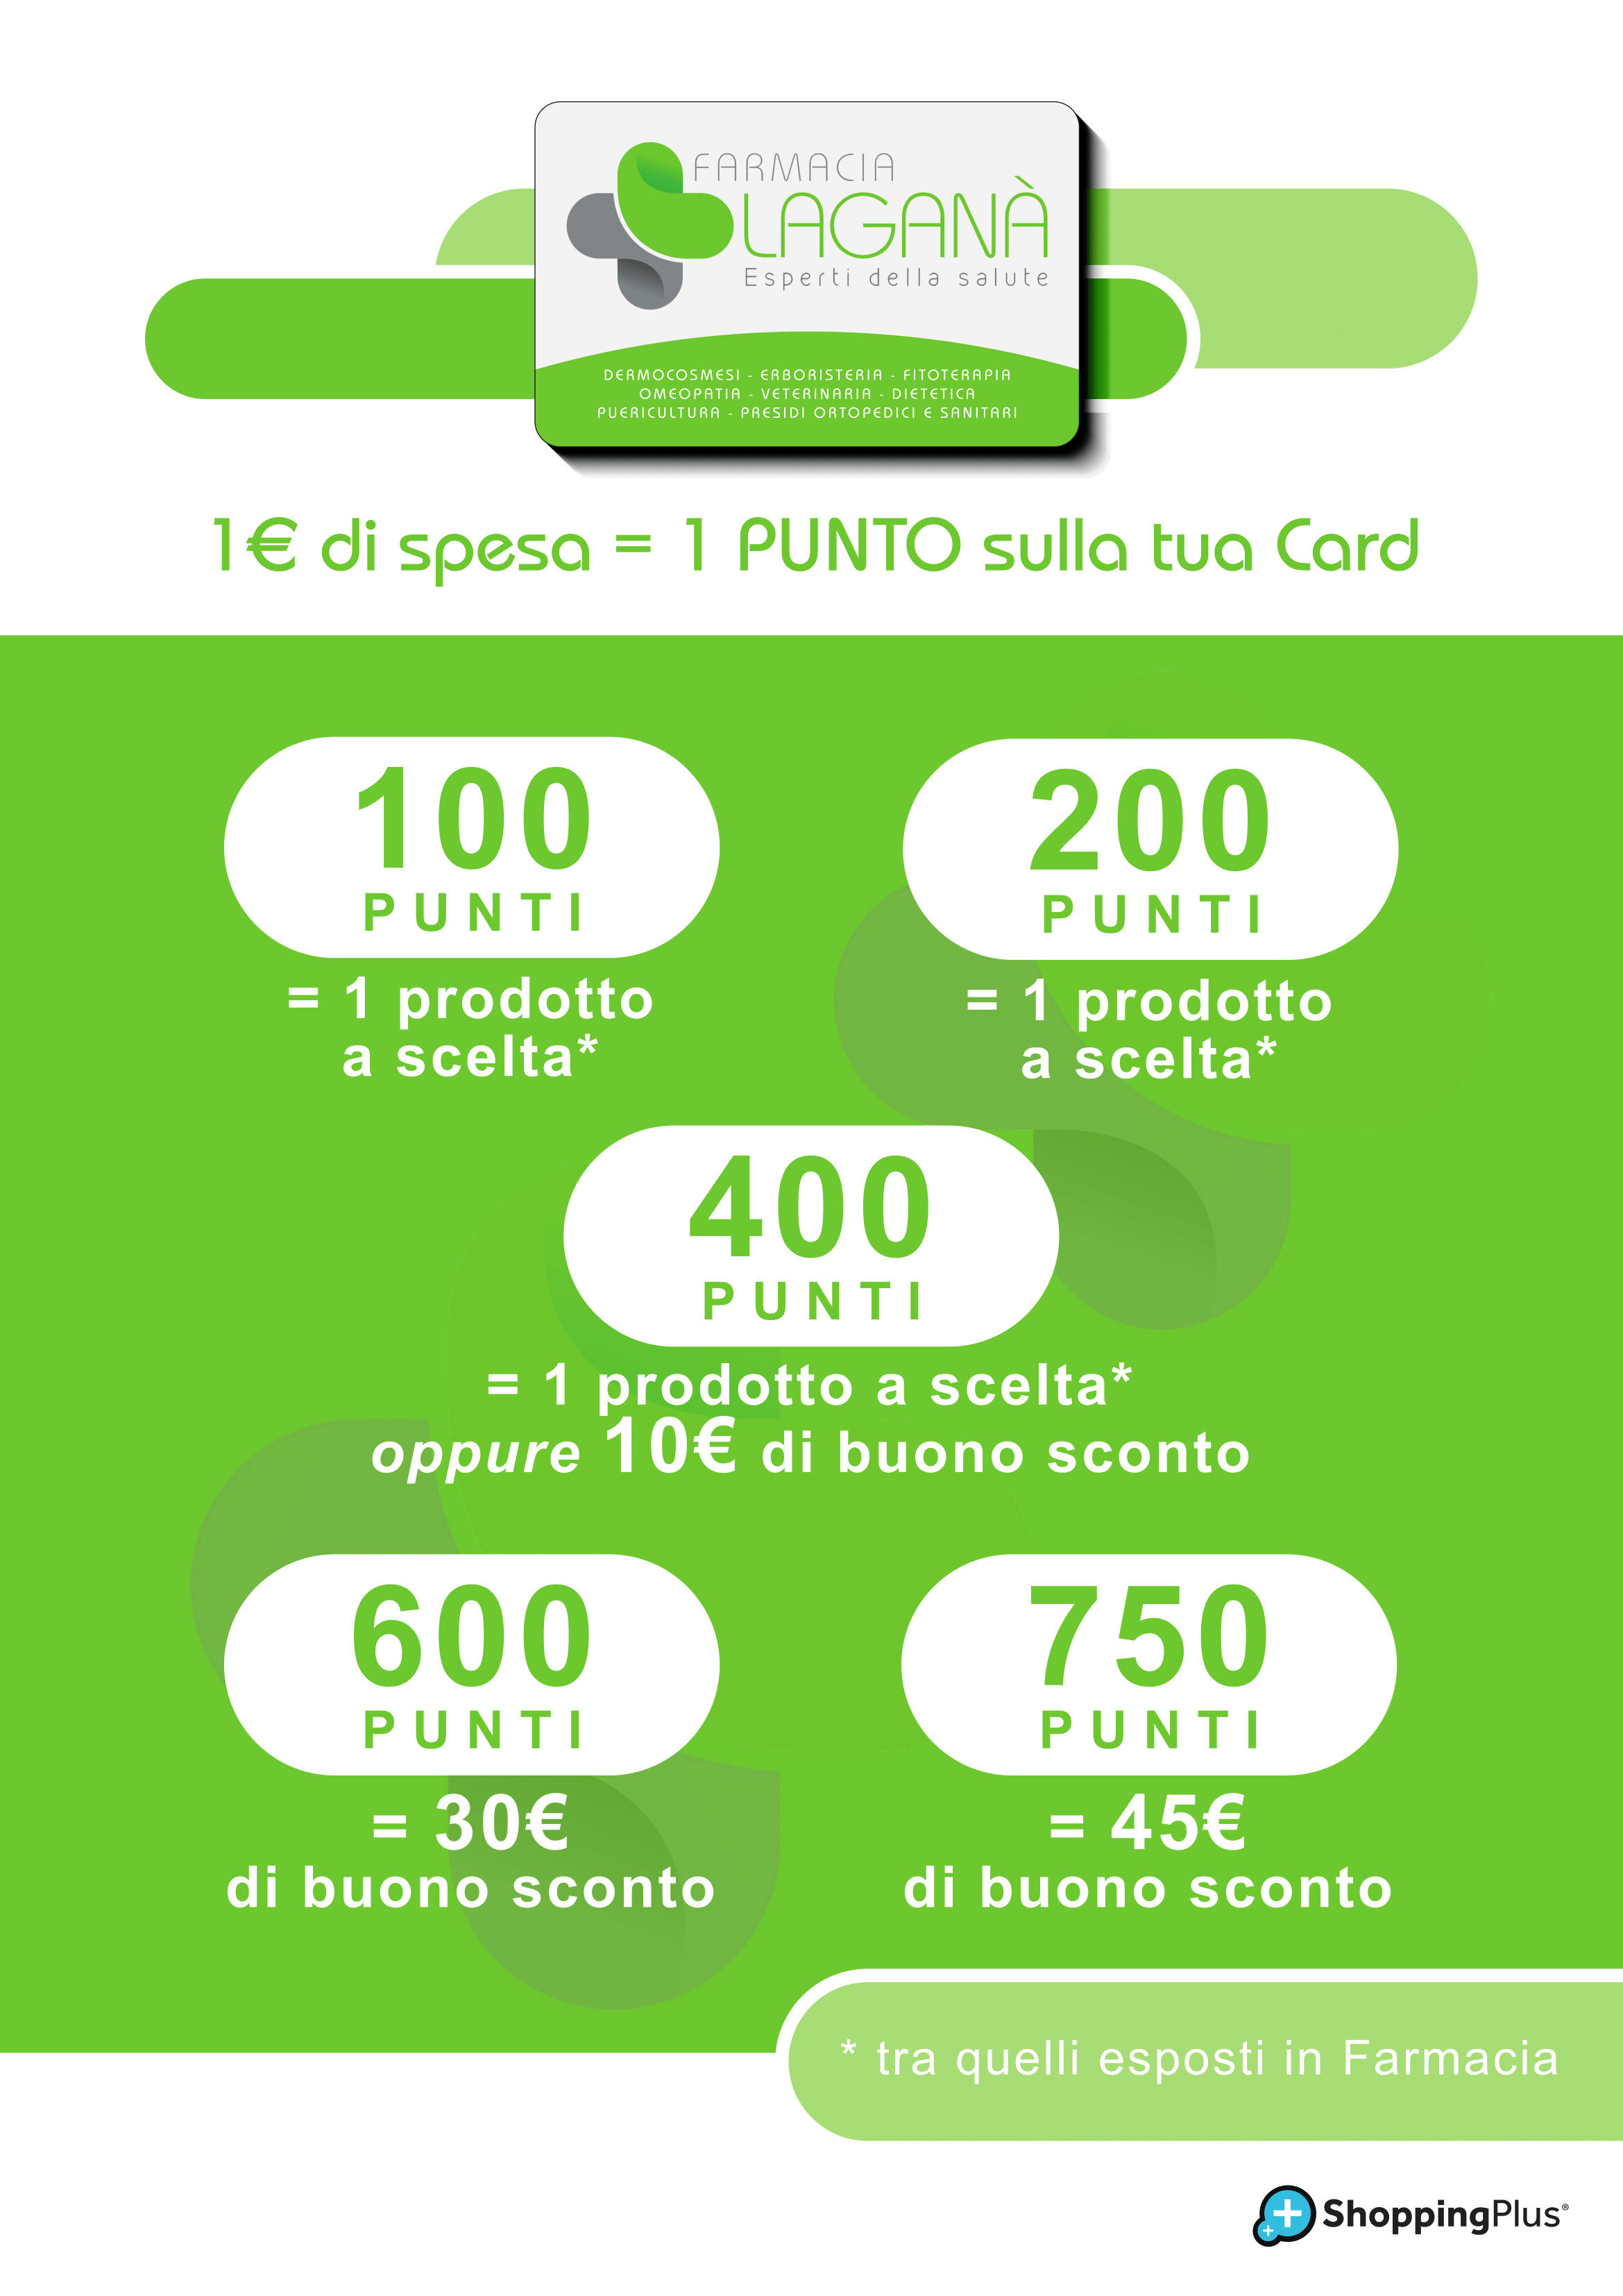 fidelity-card-farmacia